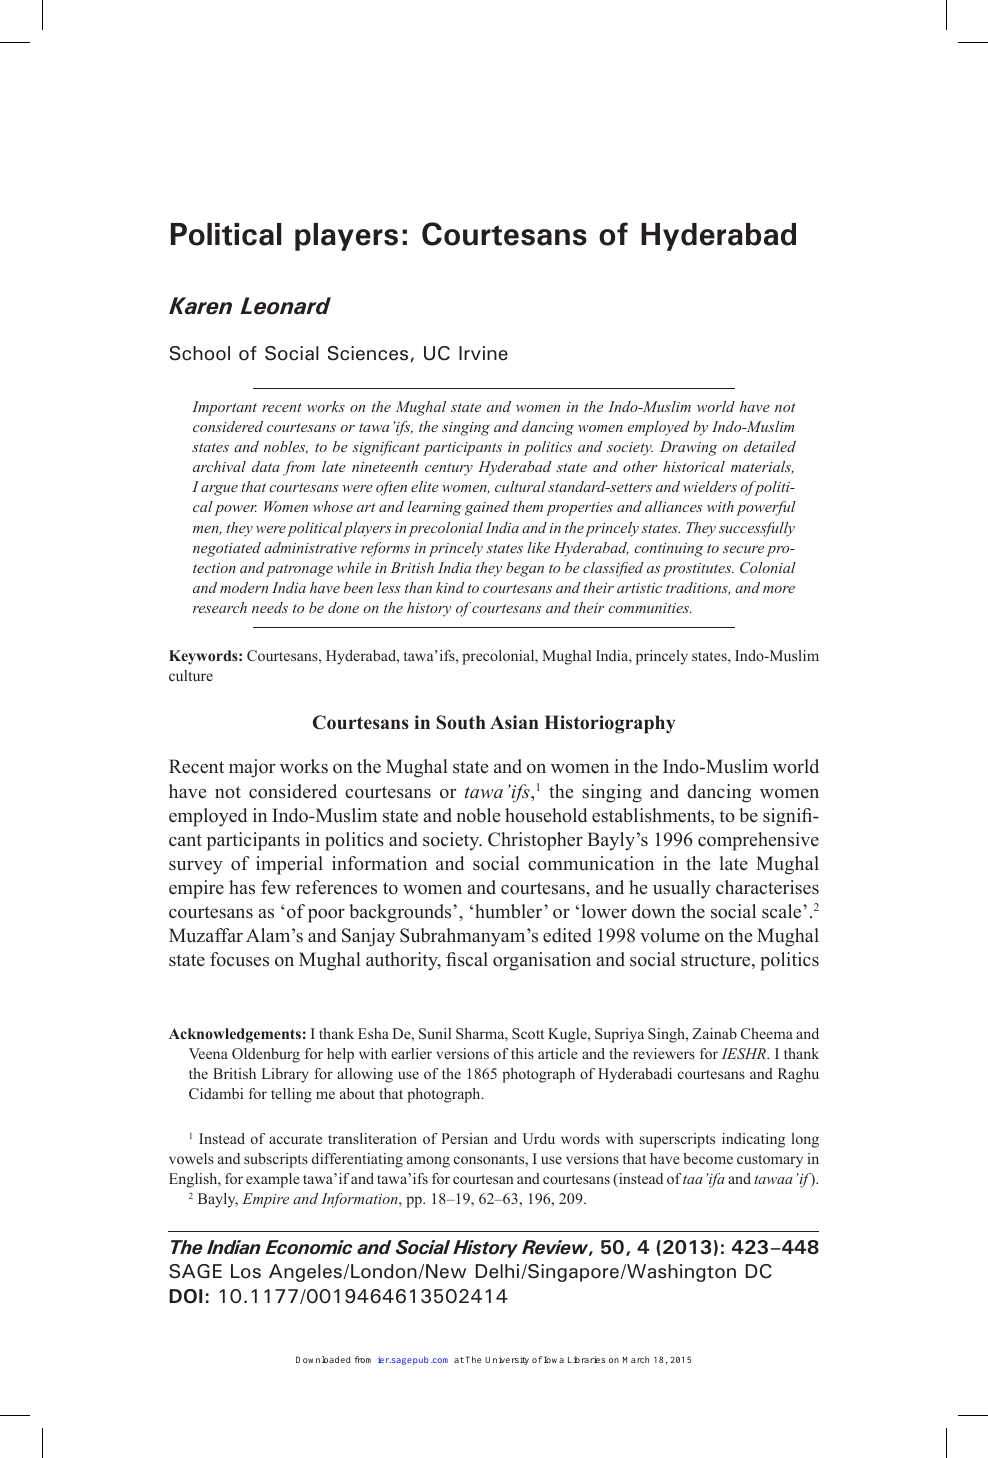 Political players: Courtesans of Hyderabad – topic of research paper